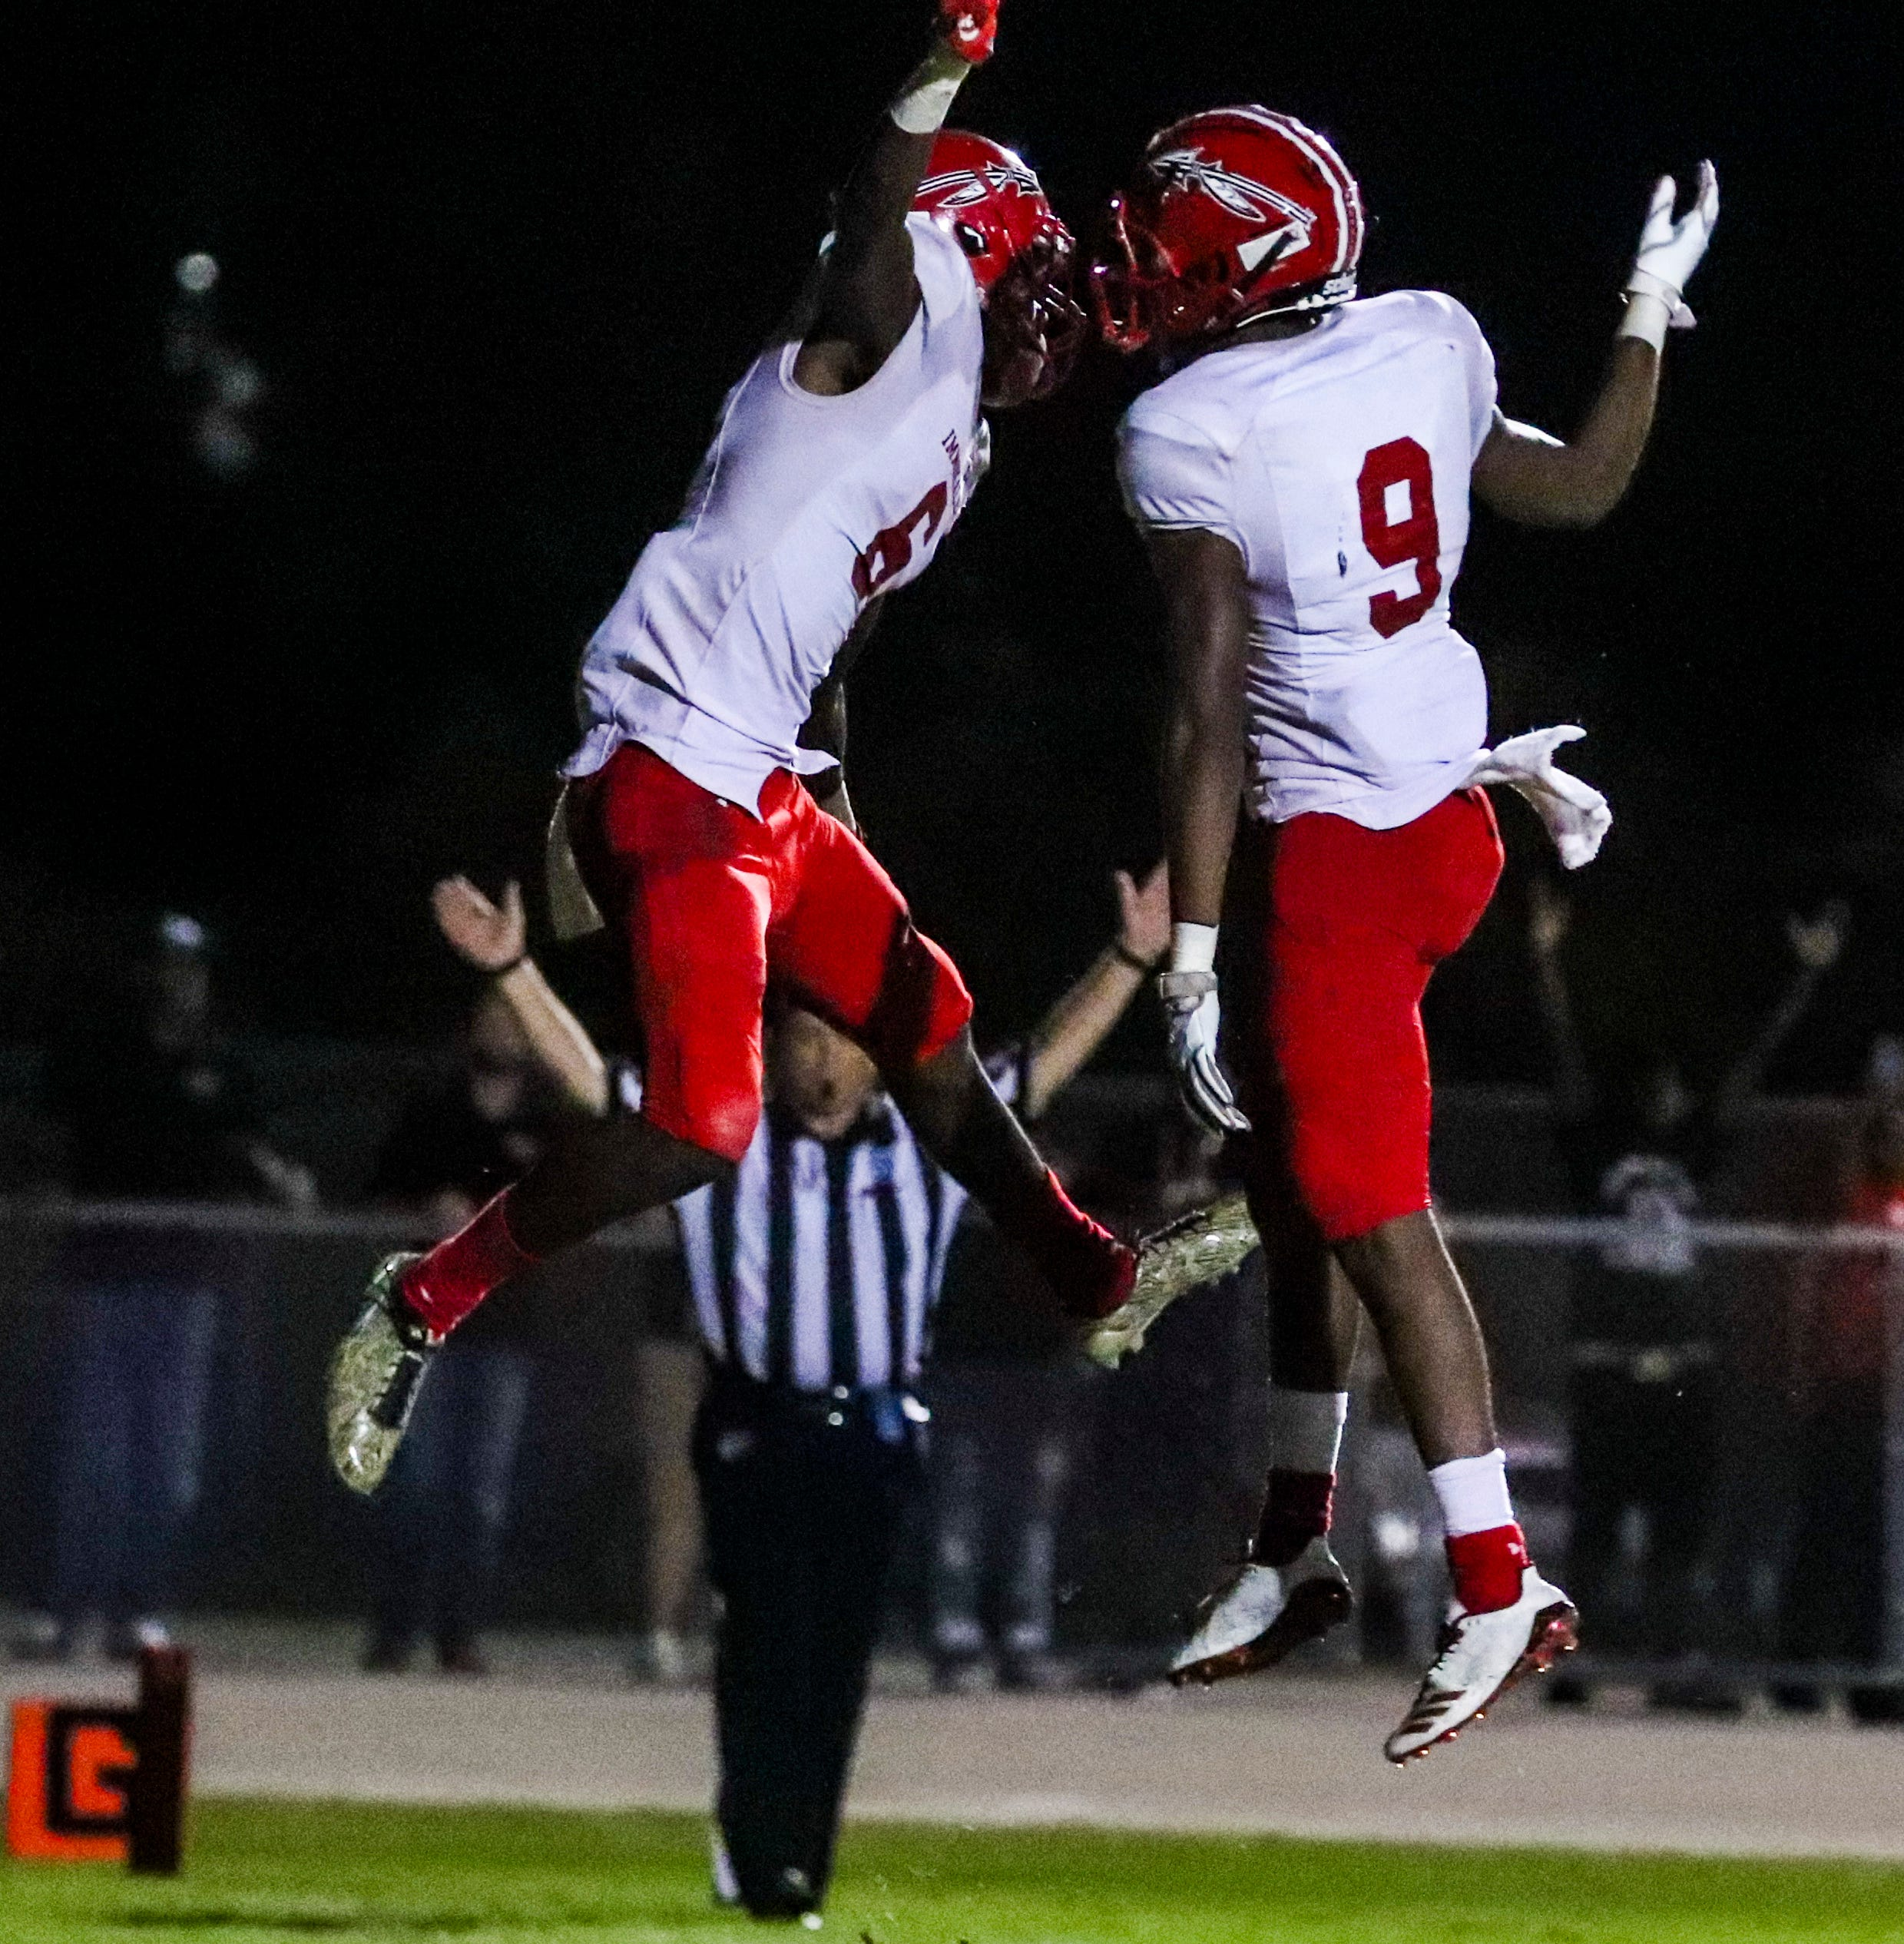 High school football: Immokalee routs Dunbar in 5A quarterfinals